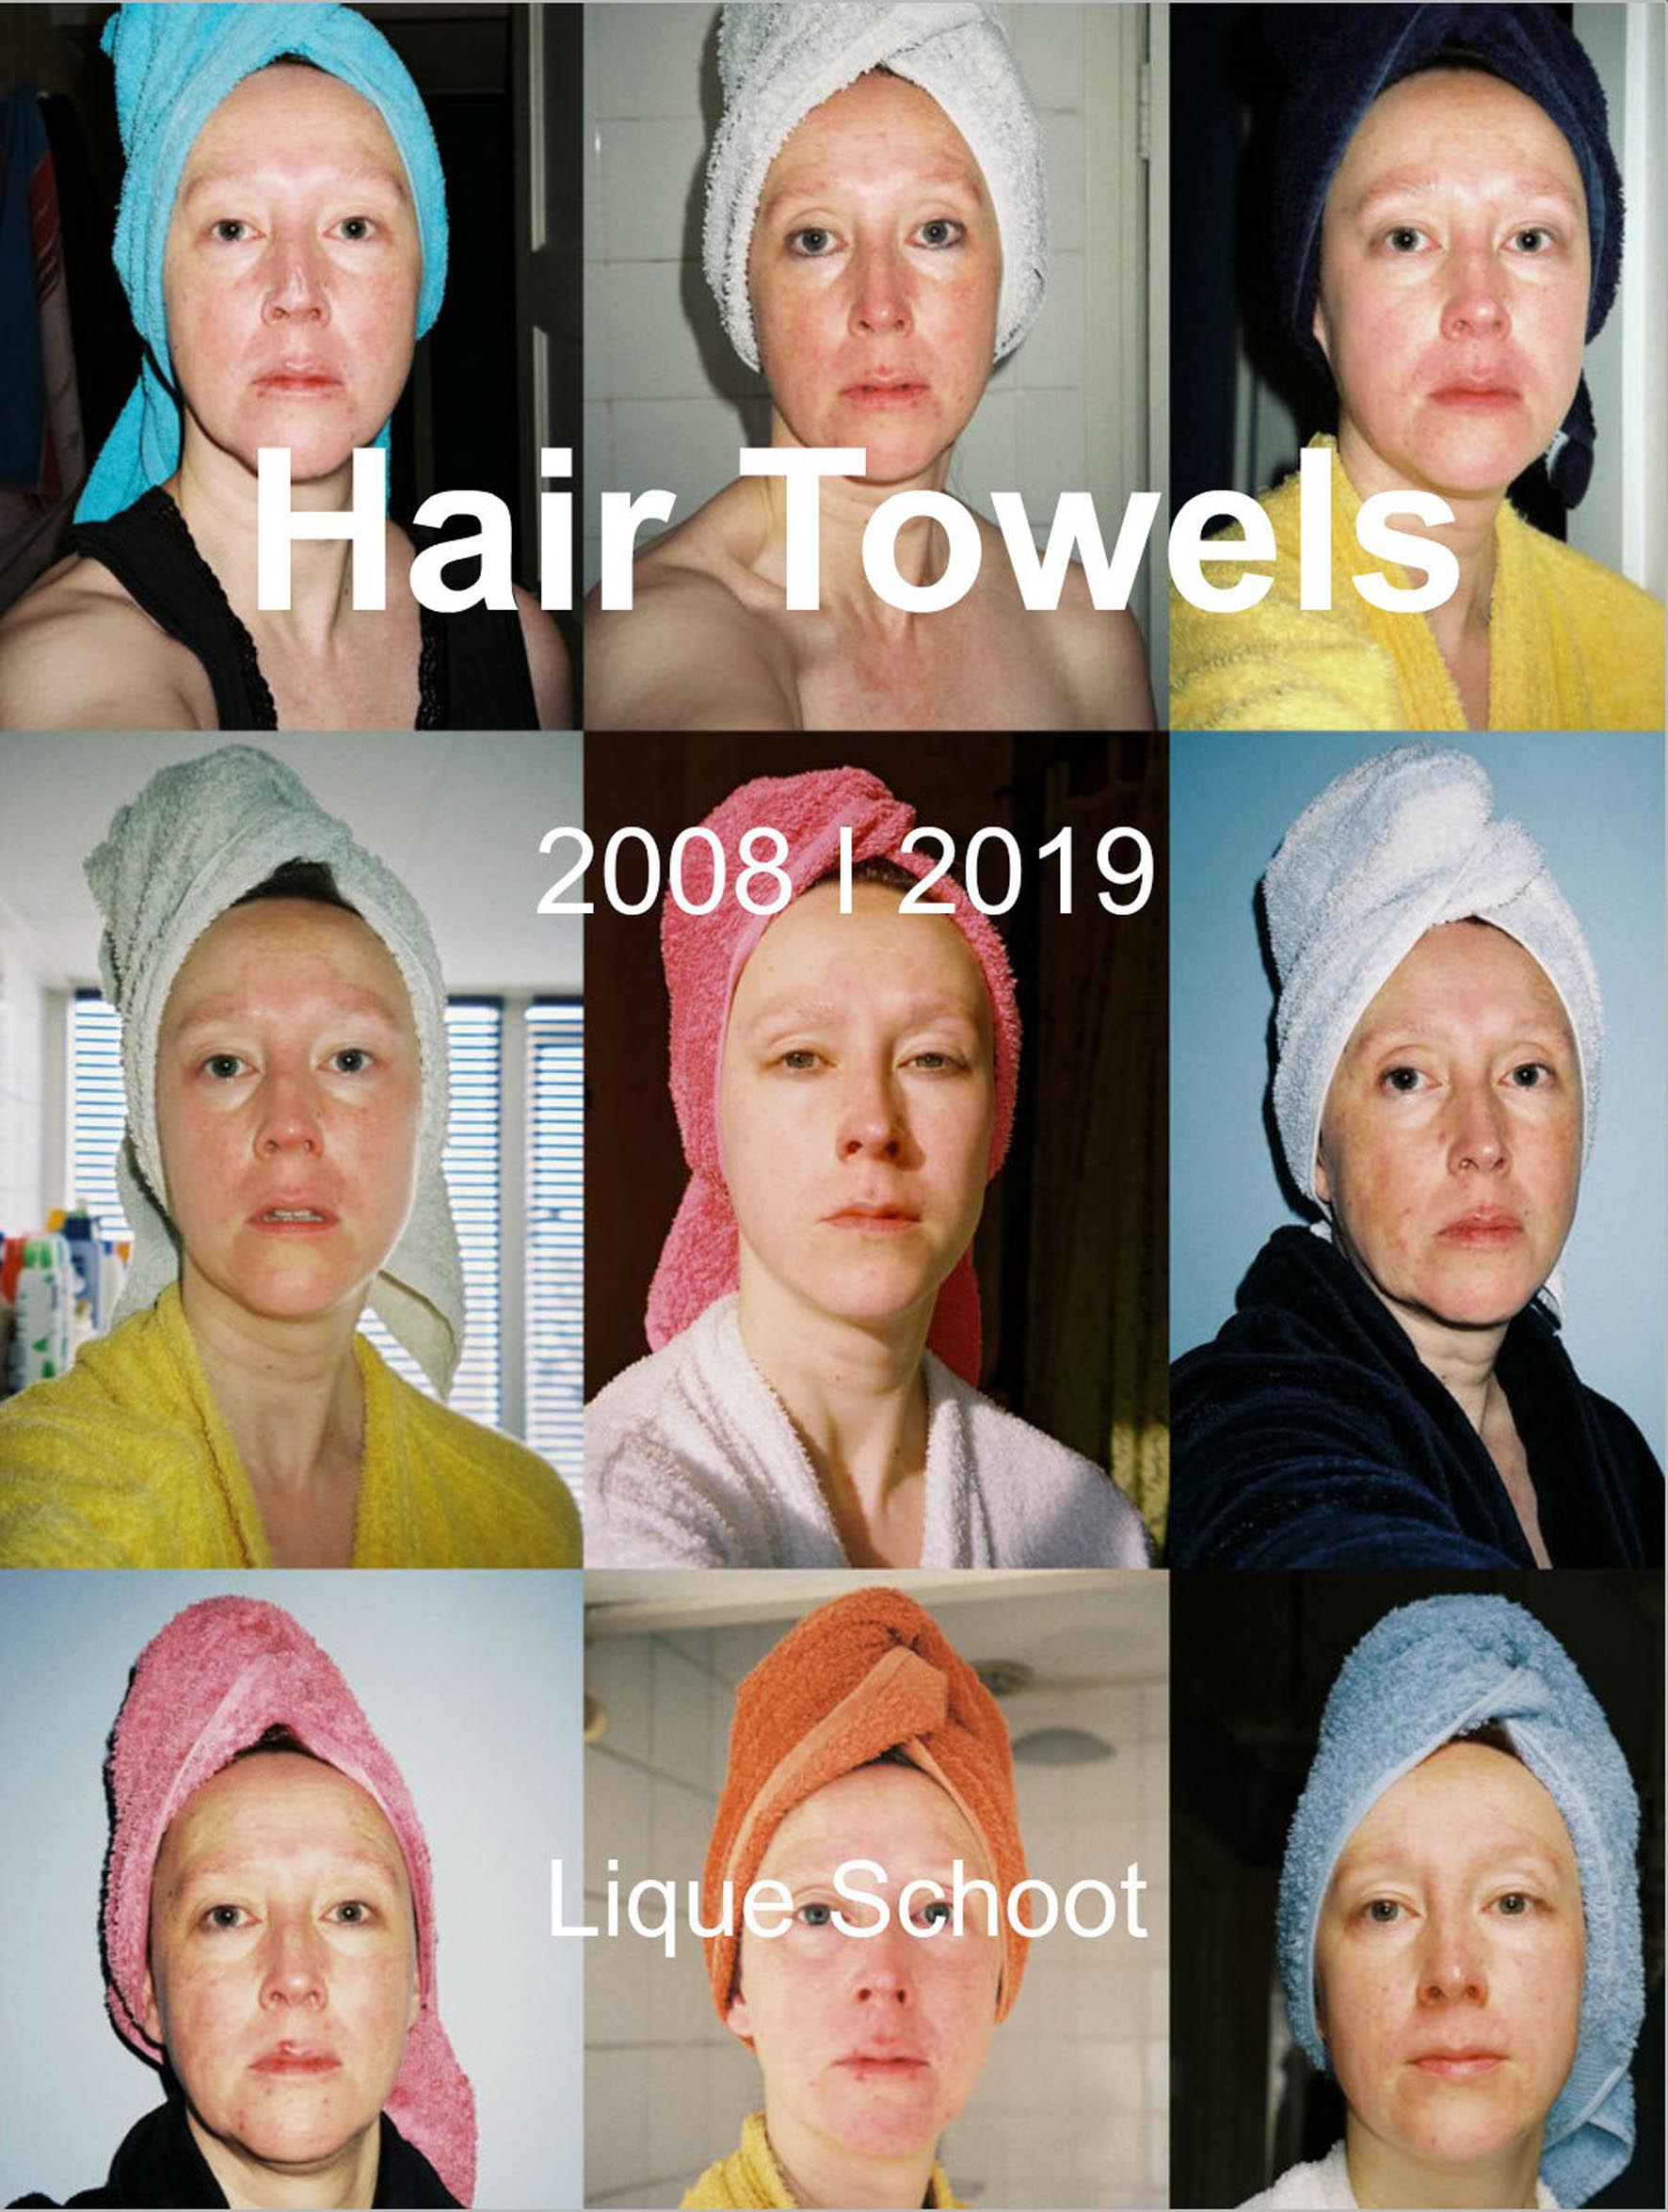 Cover Hair Towels 2008 I 2019